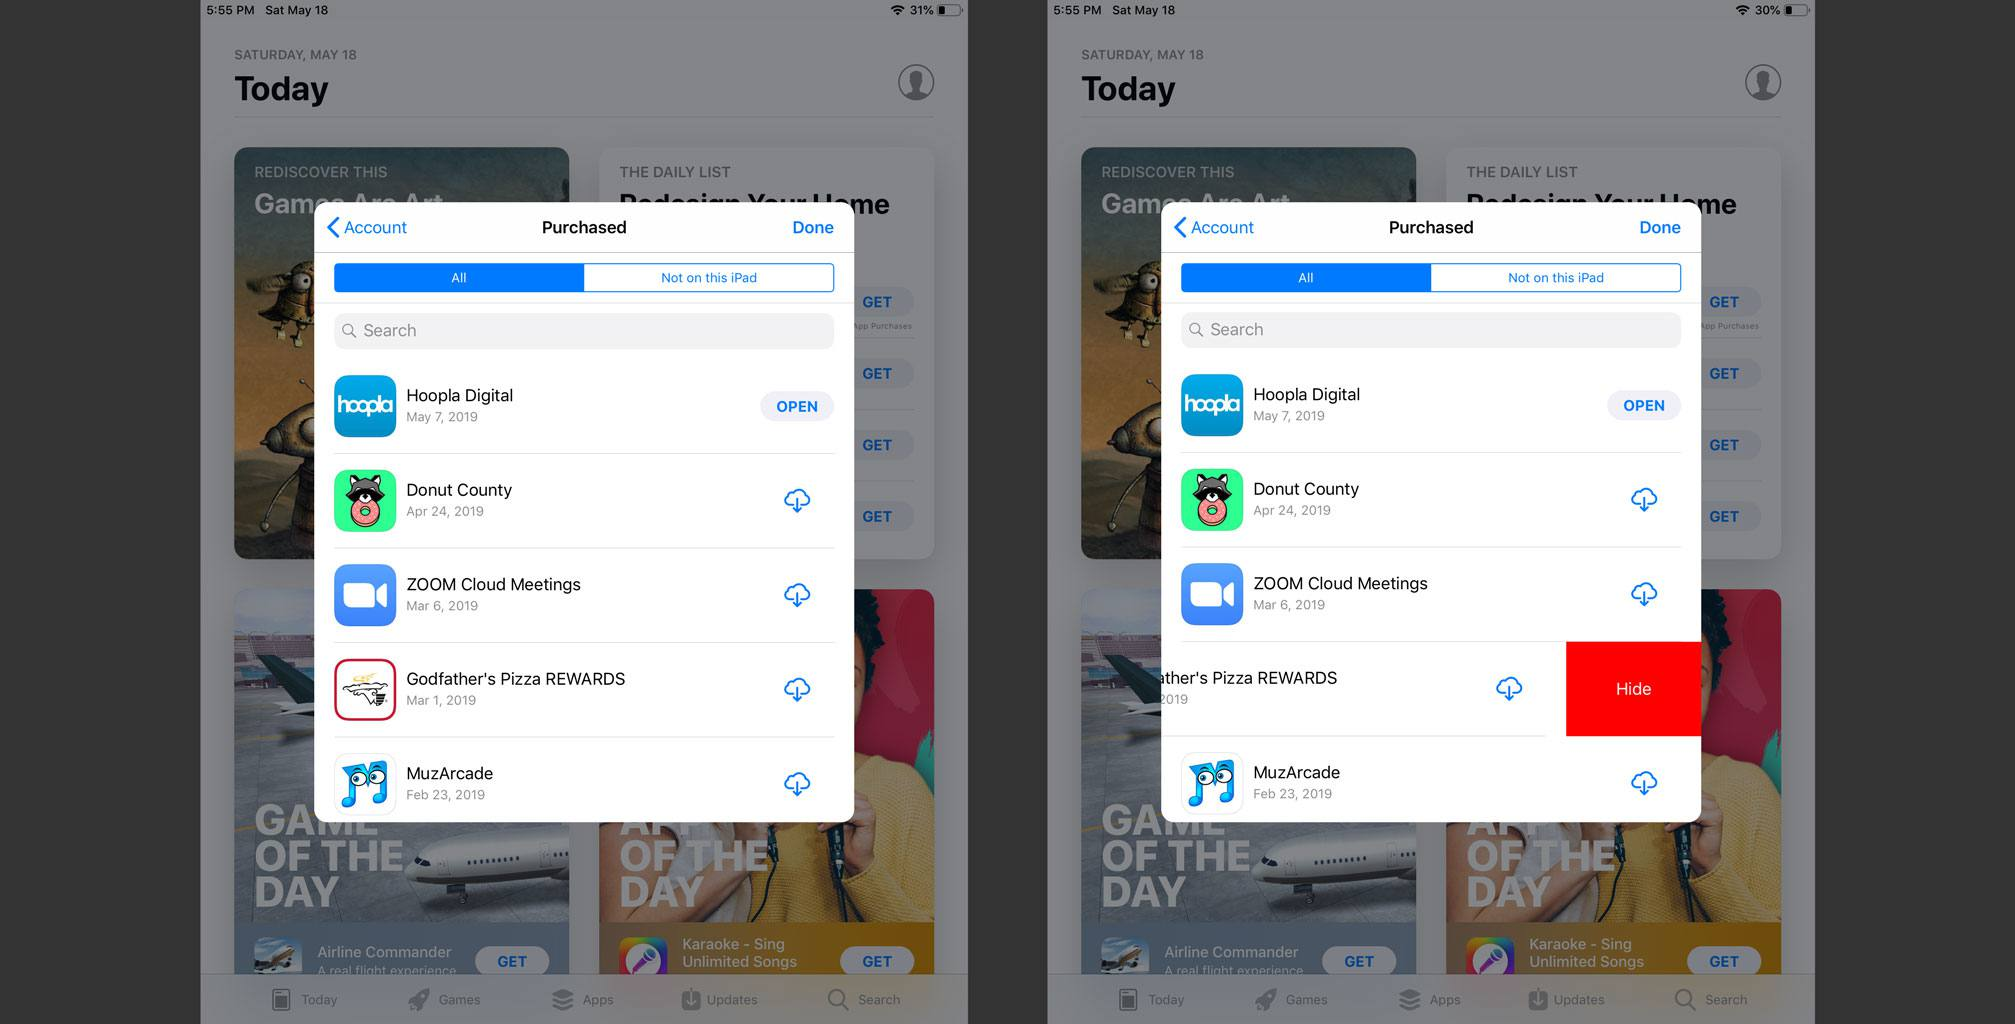 How to Hide Apps in the iPhone or iPad's Purchased List